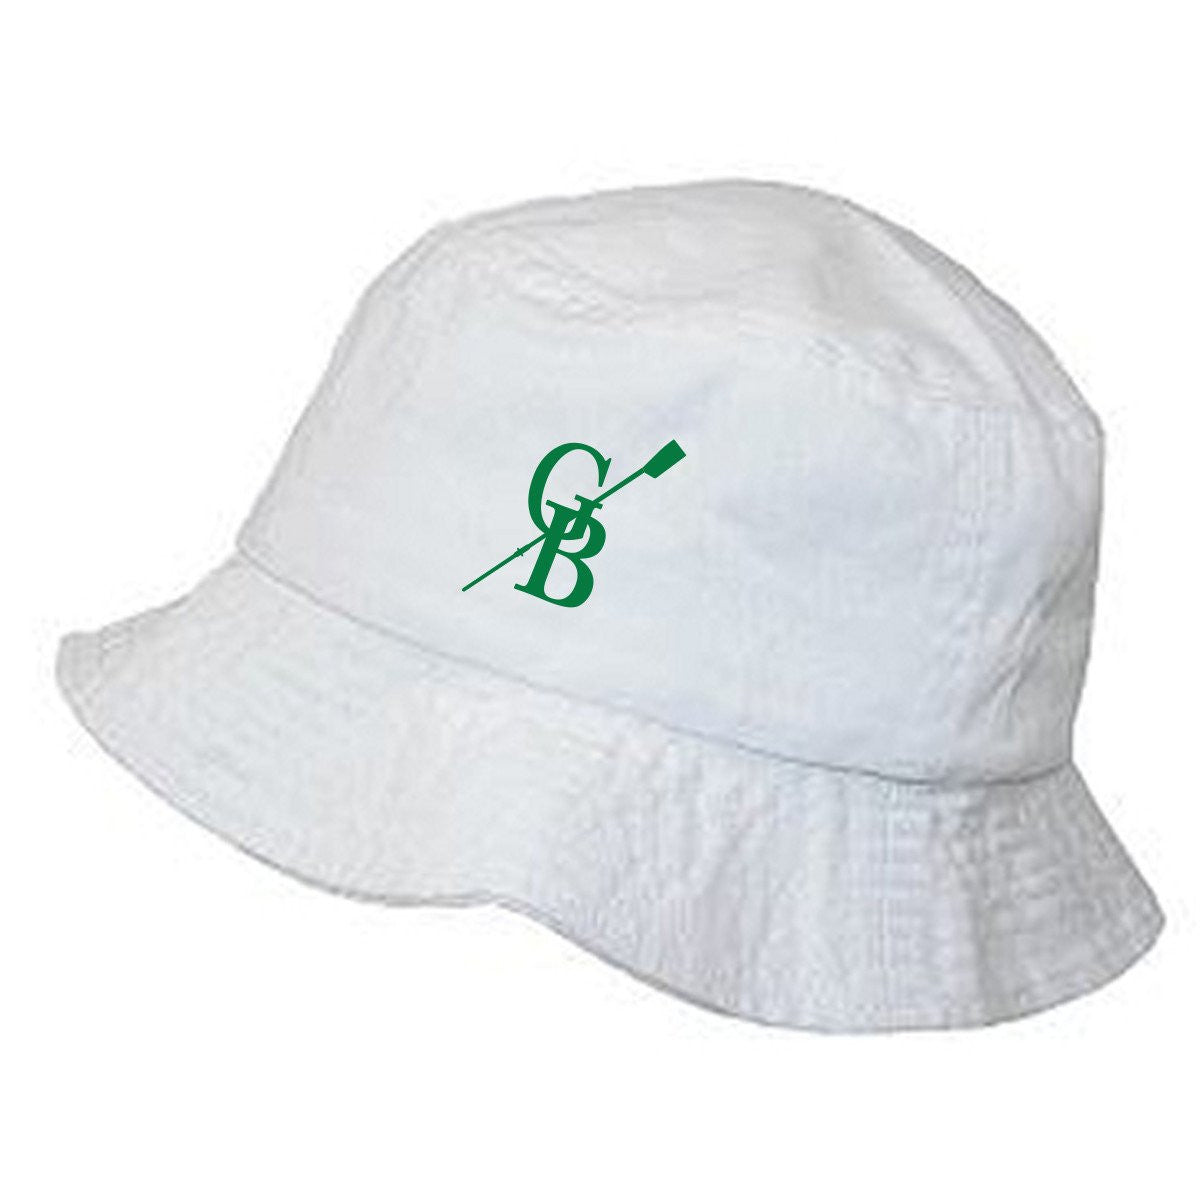 Great Bridge Crew Cotton Bucket Hat